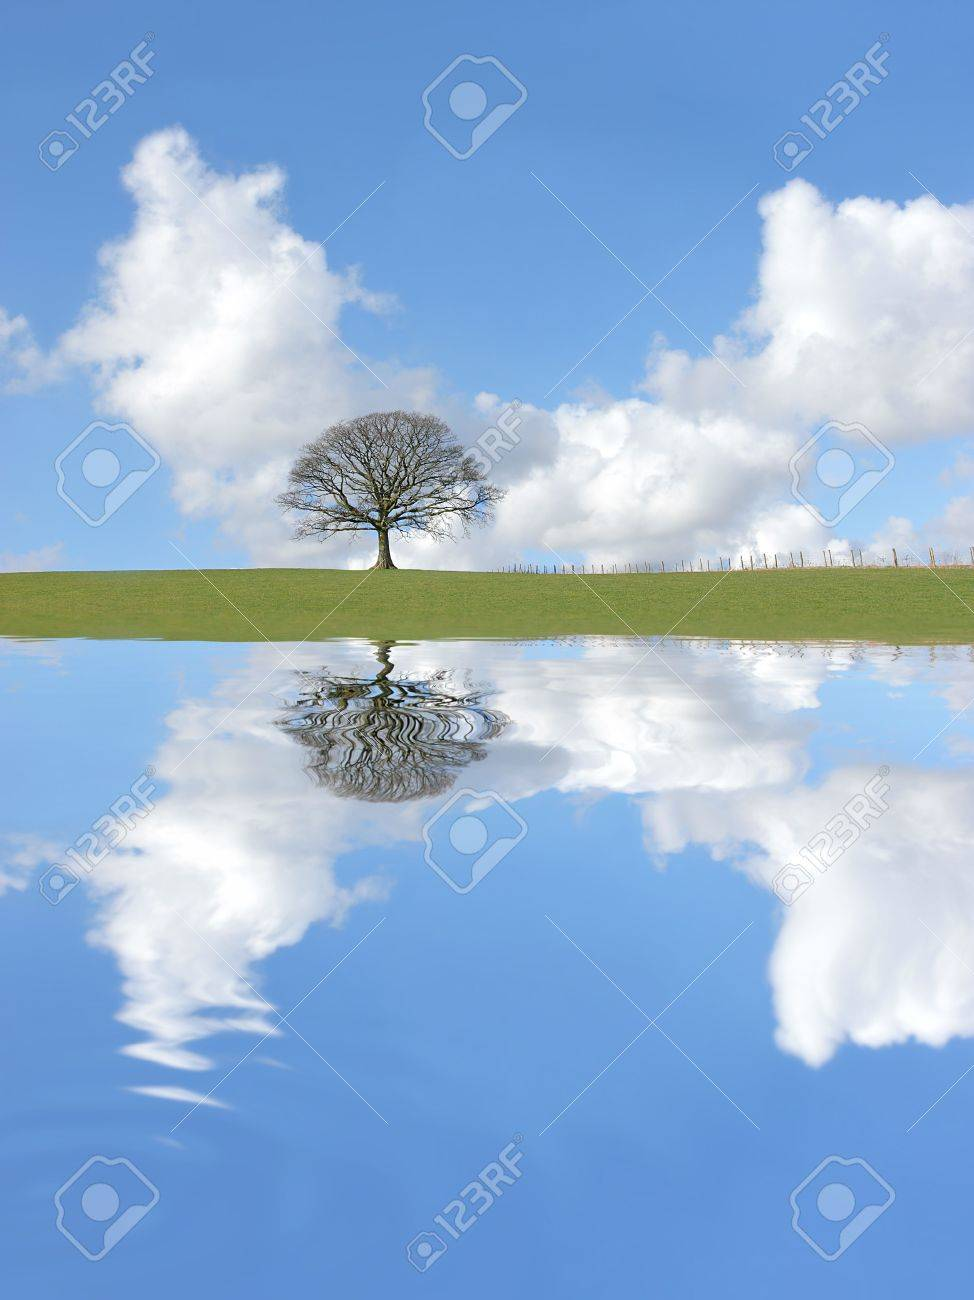 Abstract of an oak tree in winter standing alone on an area of grass, with reflection in rippled water. Set against a blue sky with cumulus clouds. Stock Photo - 2661427